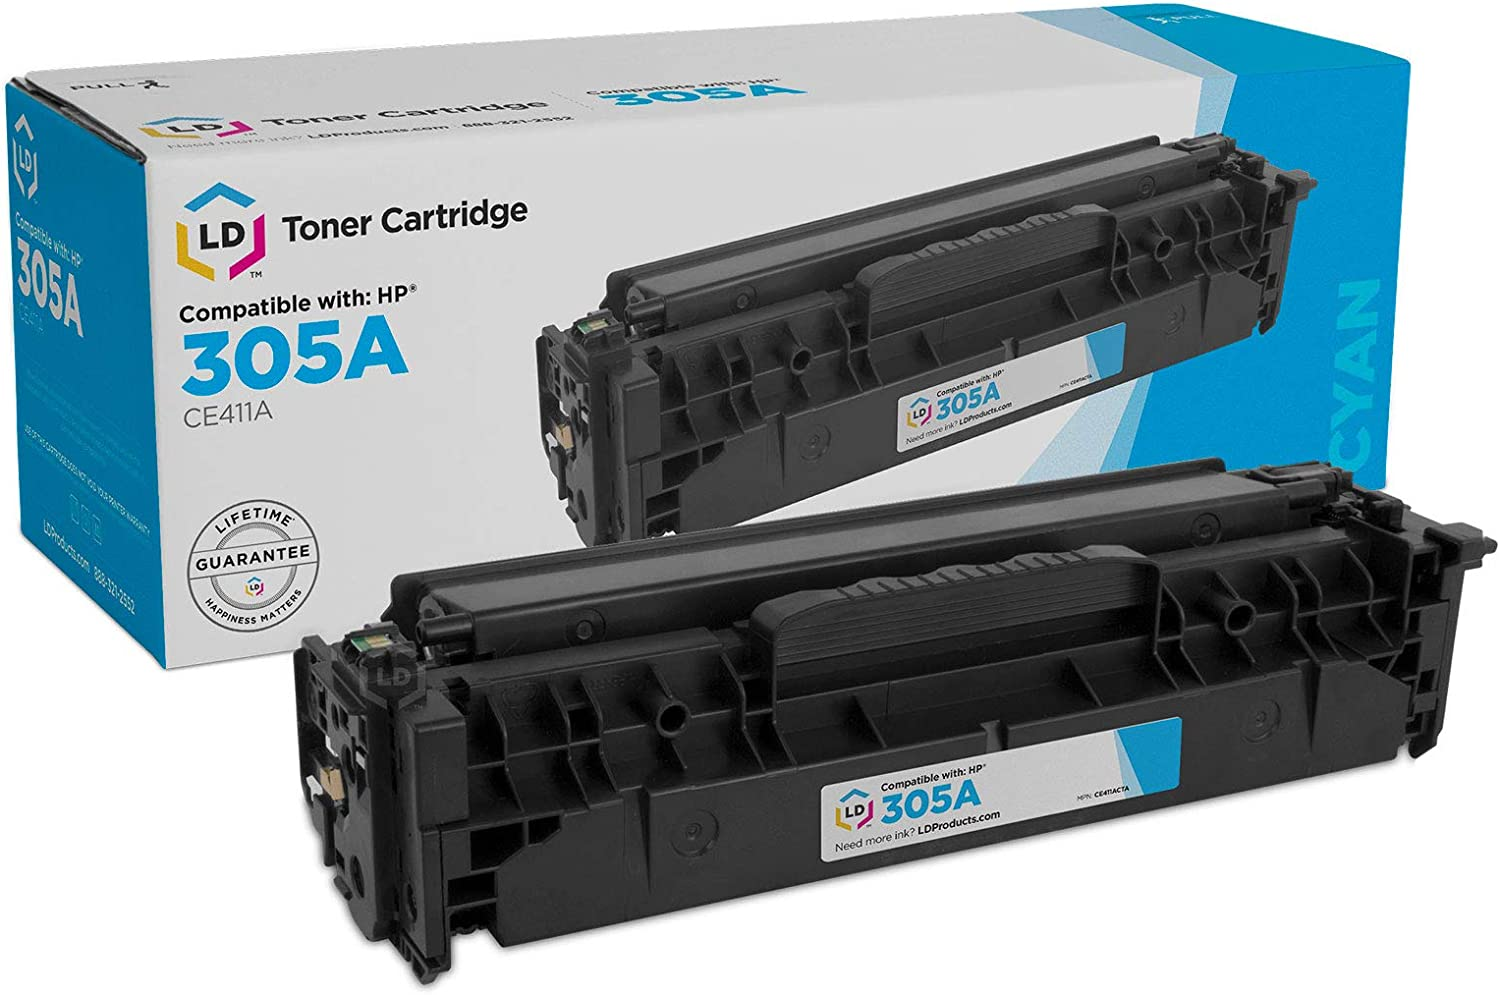 LD Remanufactured Toner Cartridge Replacement for HP 305A CE411A (Cyan)